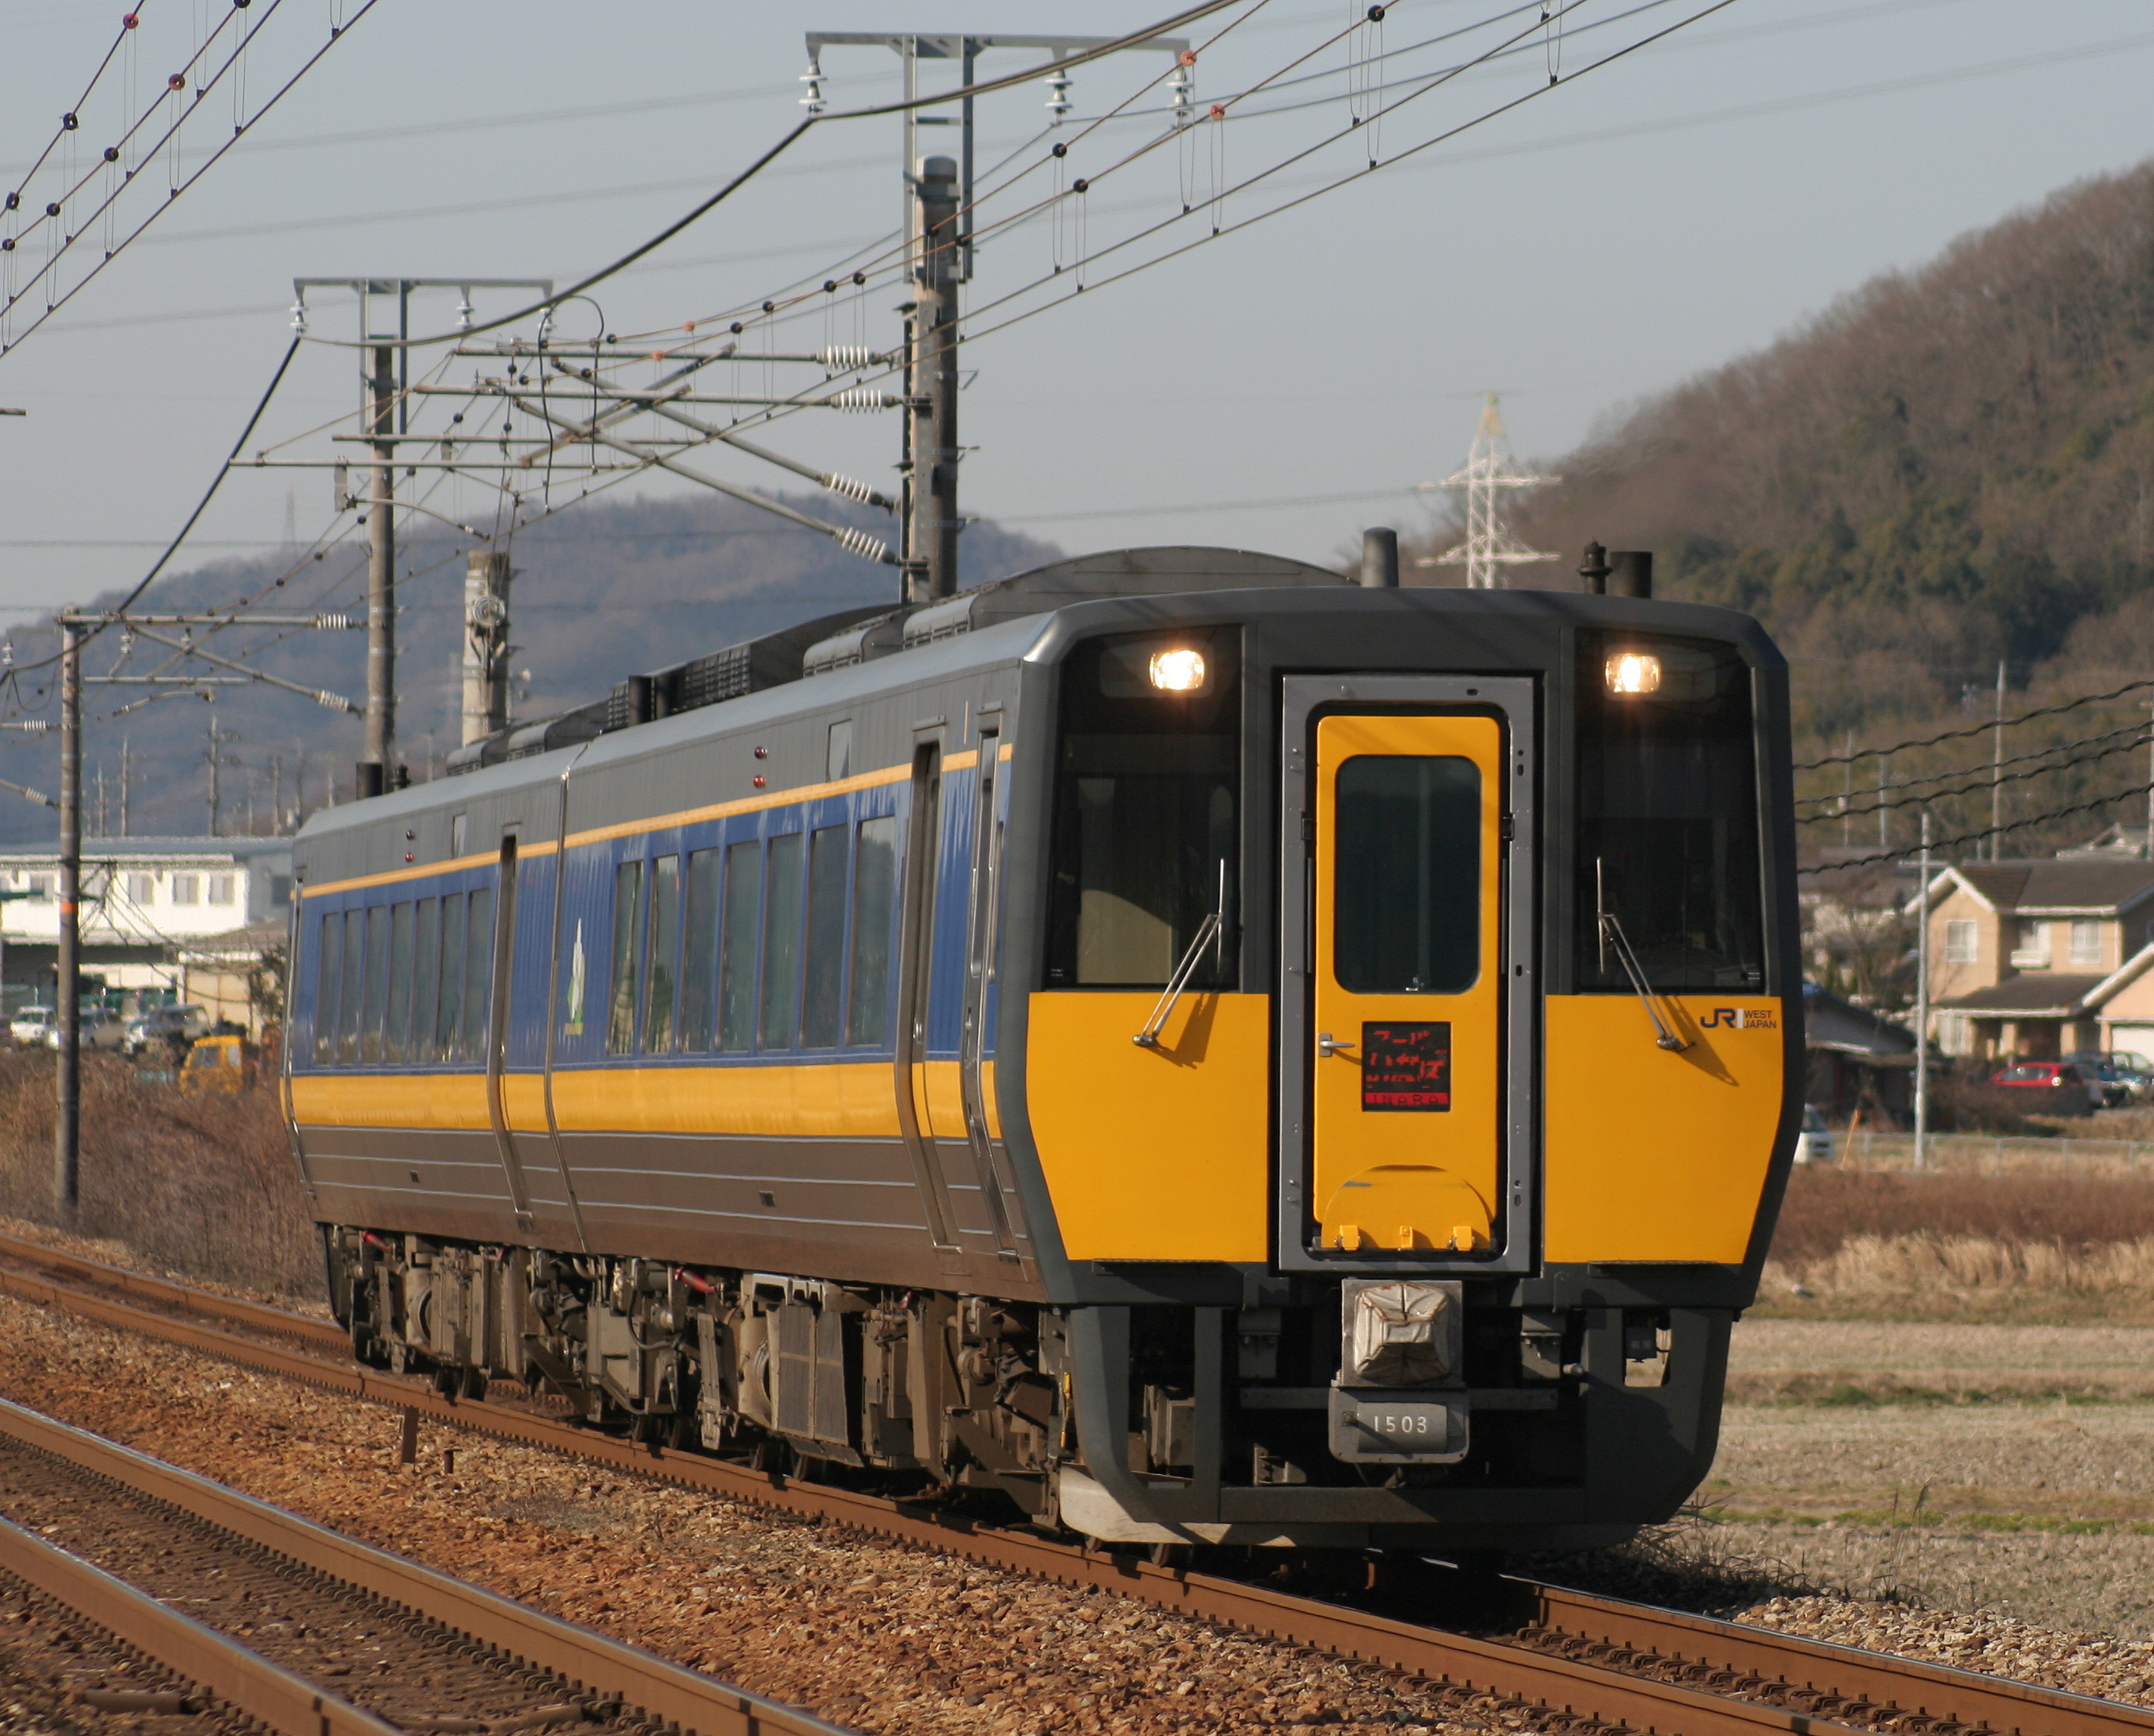 https://upload.wikimedia.org/wikipedia/commons/f/fc/JRW_Limited_Express_Super_Inaba.jpg